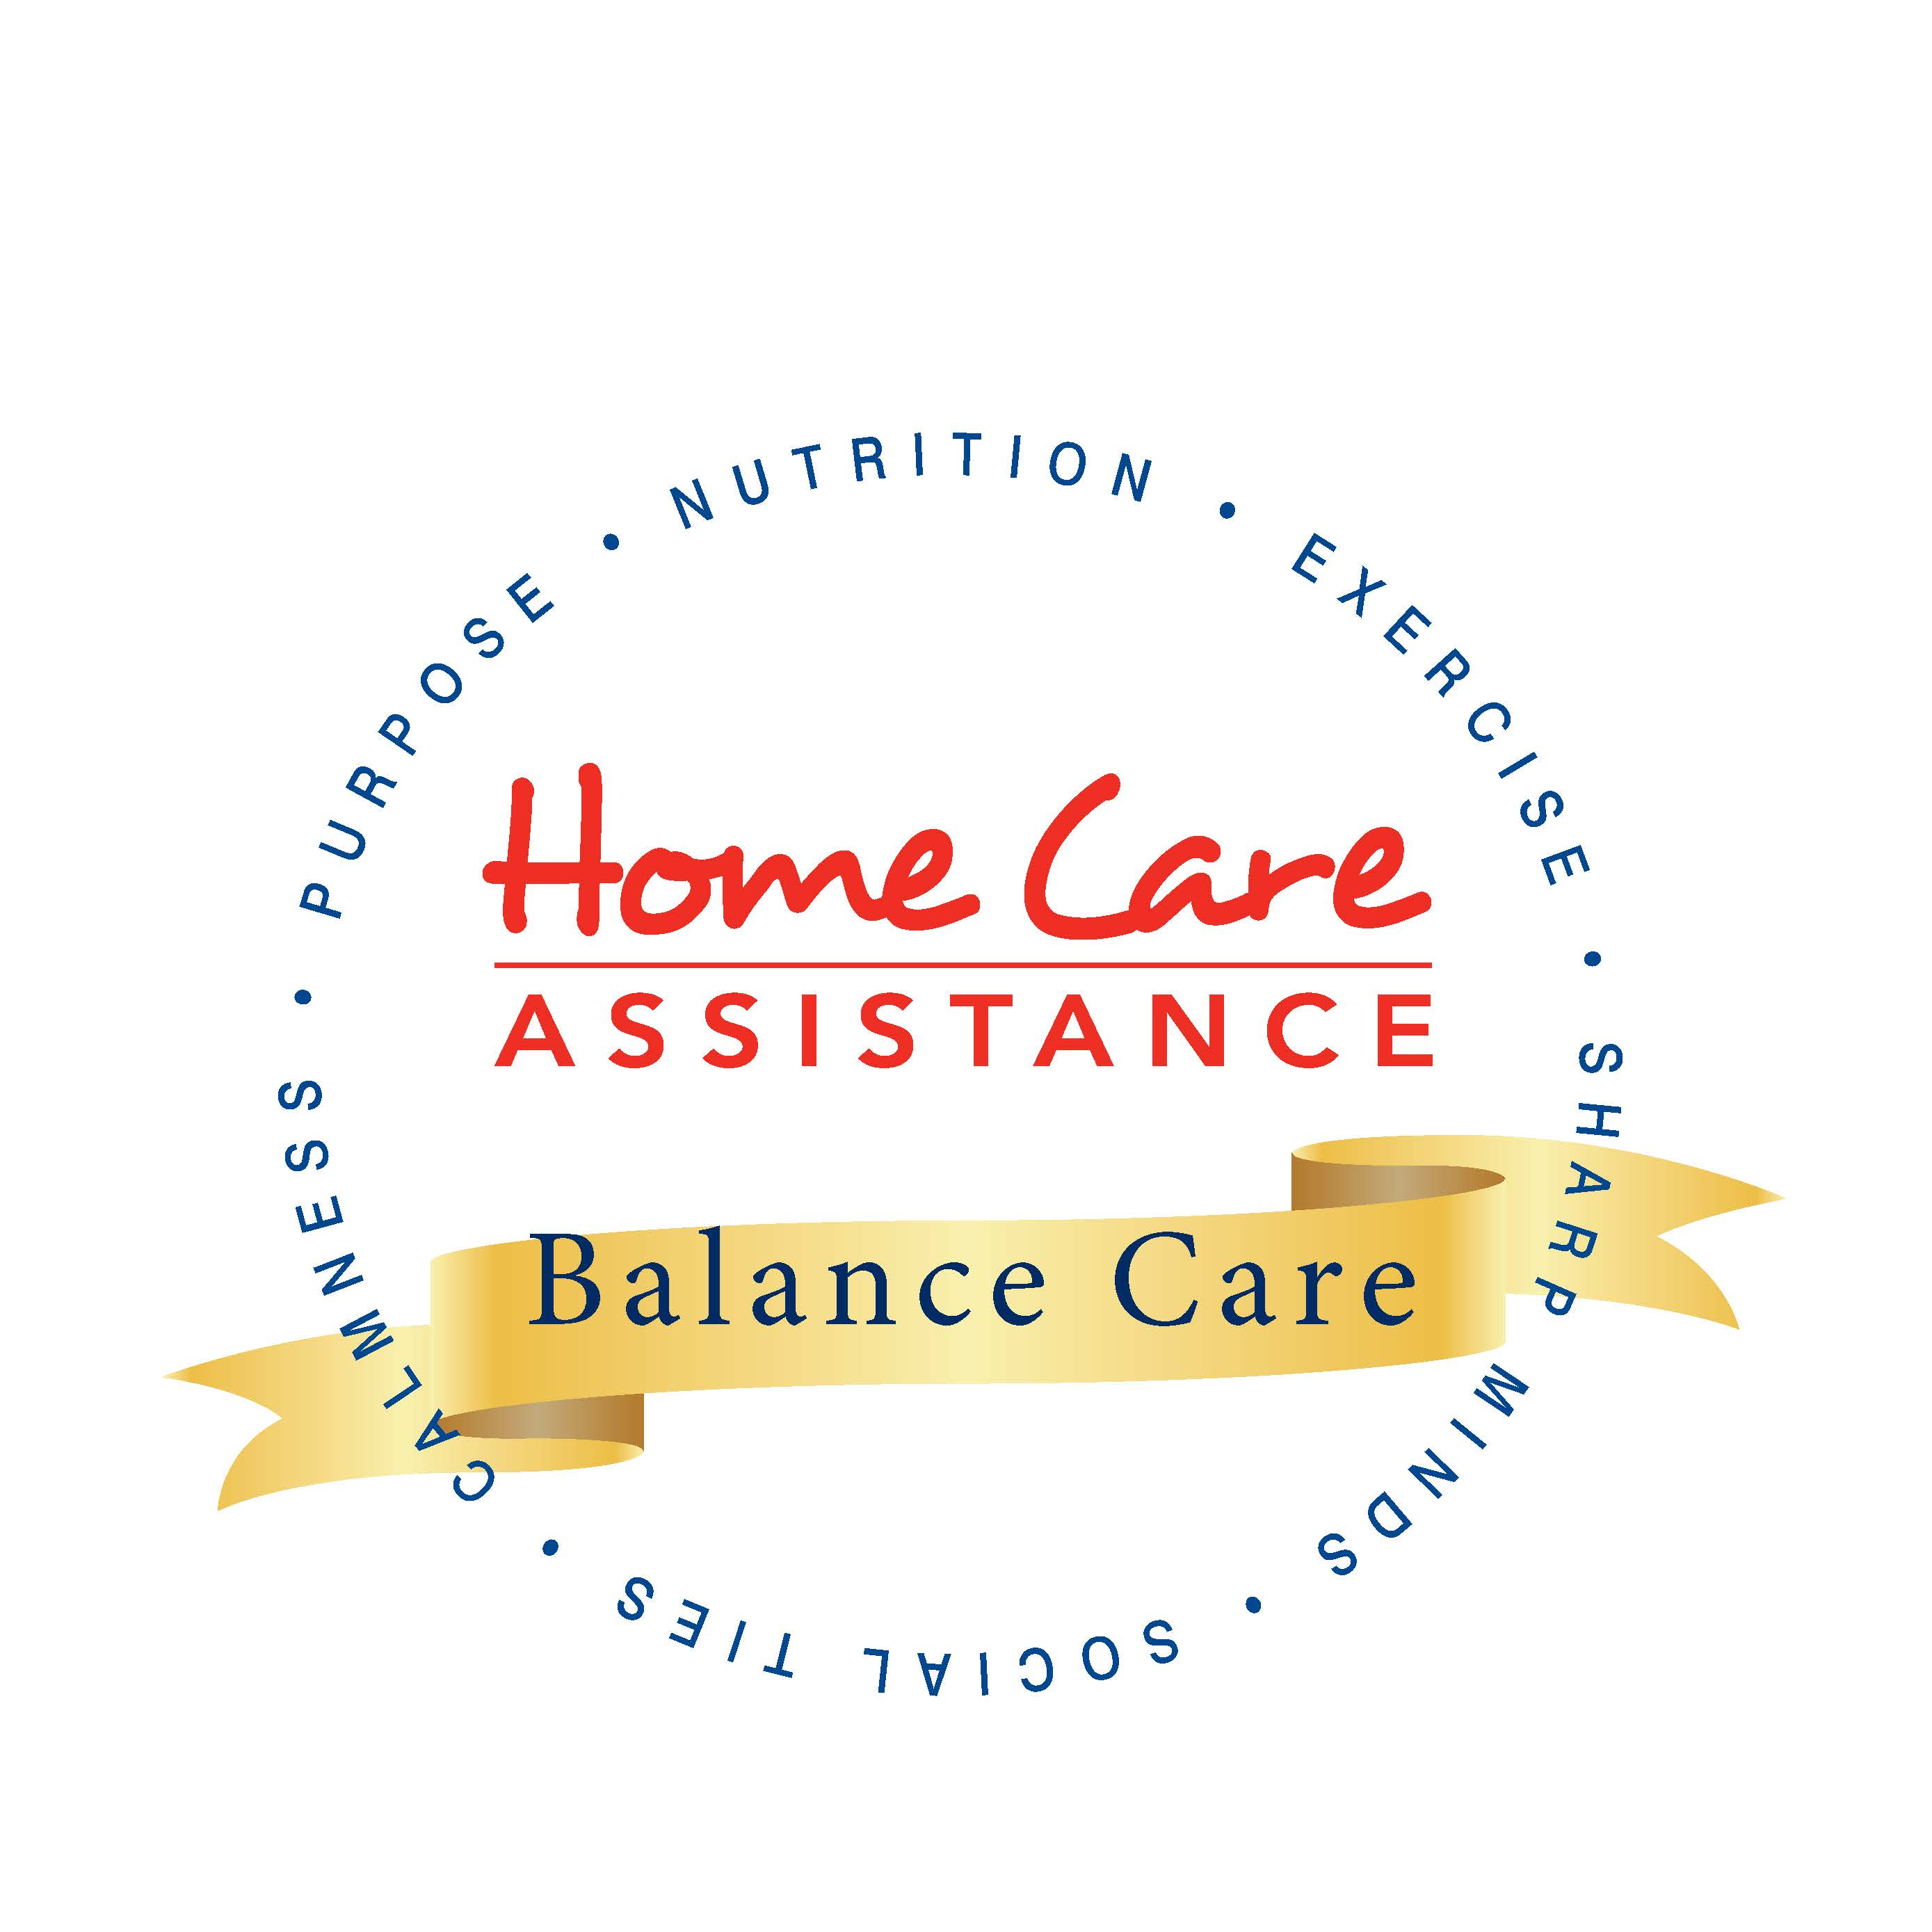 Home Care Assistance South Jersey, Marlton New Jersey (nj. Best Neighborhoods In Raleigh Nc. Words That Rhyme With Dish Santa Monica Court. Requirements For Doctors Dentist In Newton Nc. System Administrator Degree Chef Open Source. Pre Approval Mortgage Process. Vaccine Injury Compensation Is Lasik For Me. Does Subway Have Gift Cards Nh Car Insurance. How Much Is Hair Restoration